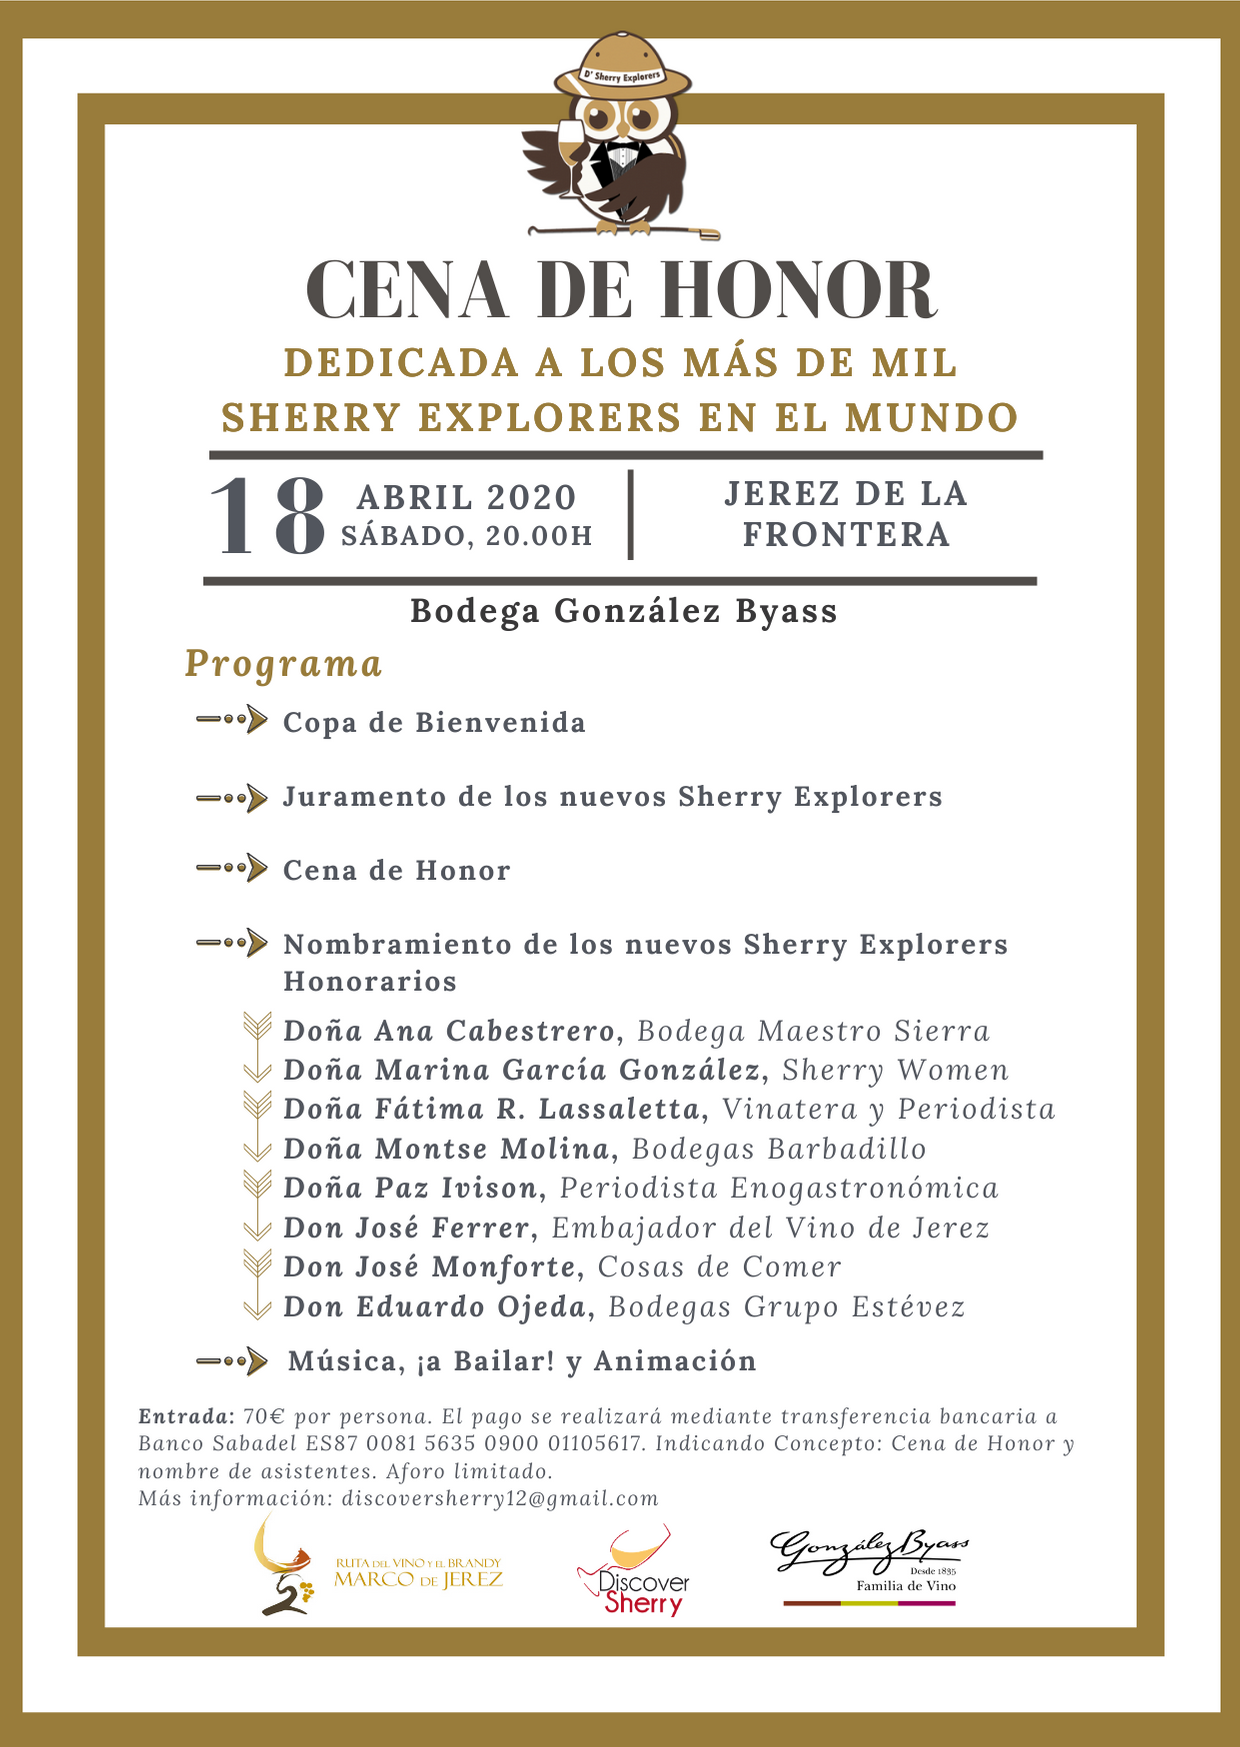 CENA DE HONOR de los Sherry Explorers 2020 (Spanish)